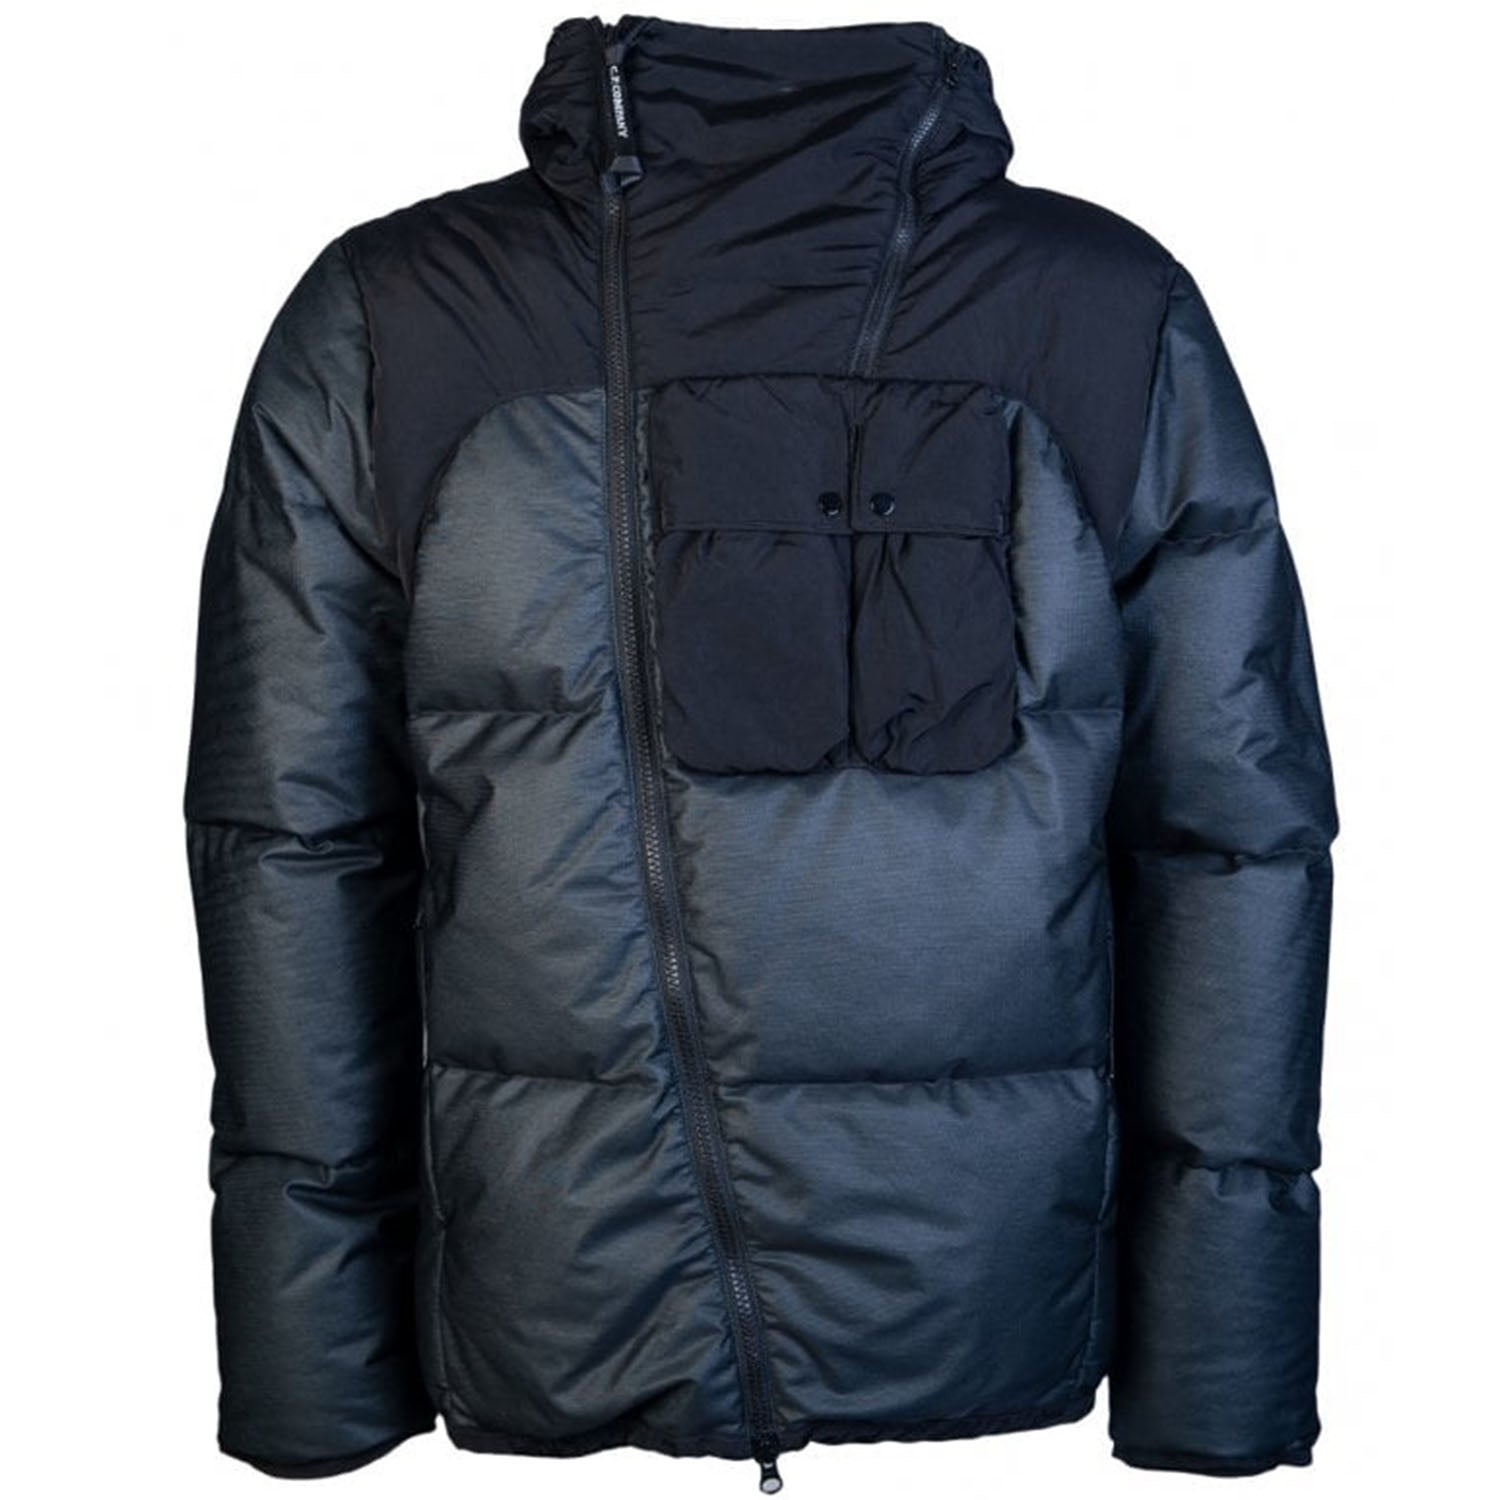 CP Company Bi-mesh Hooded Puffer jacket black